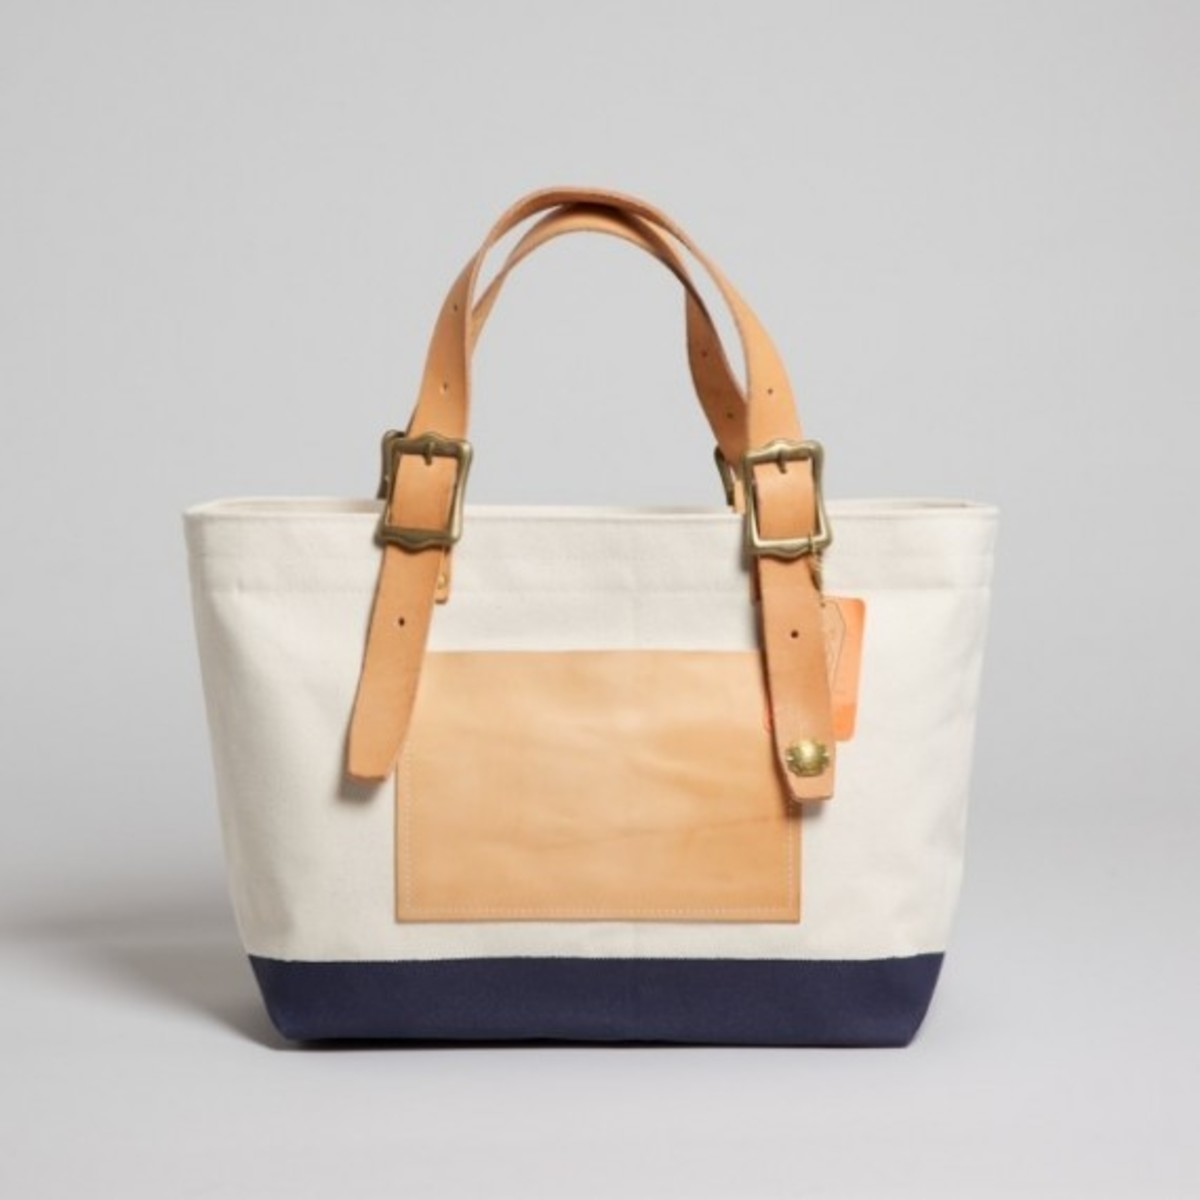 superior-labor-engineer-tote-bag-07